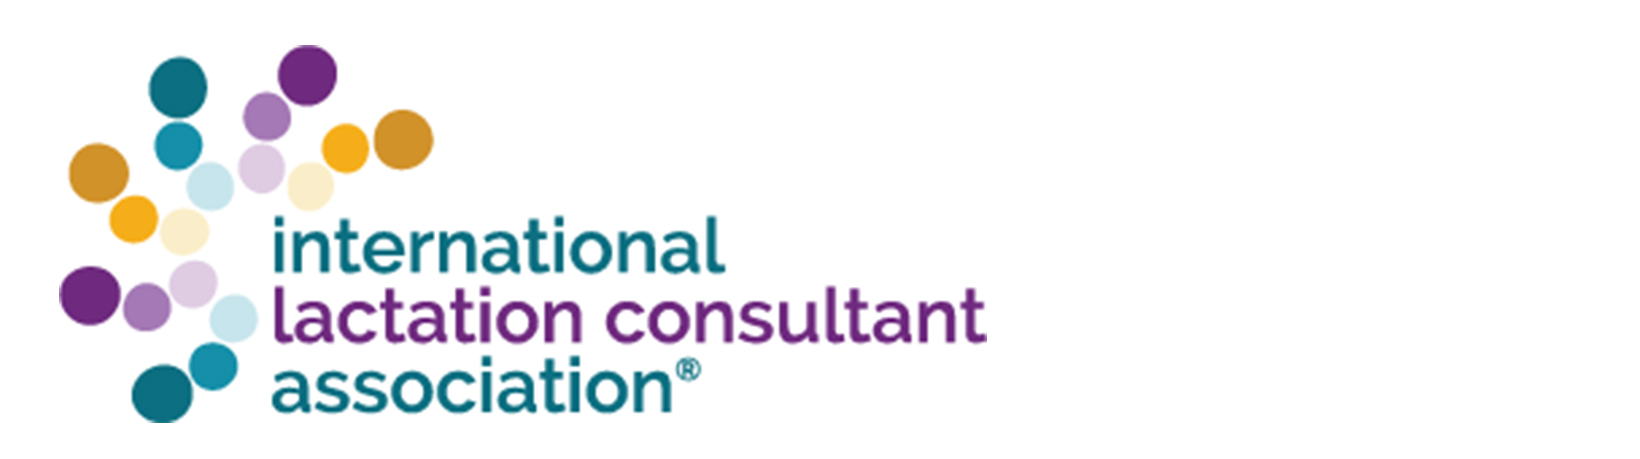 International Lactation Consultant Association